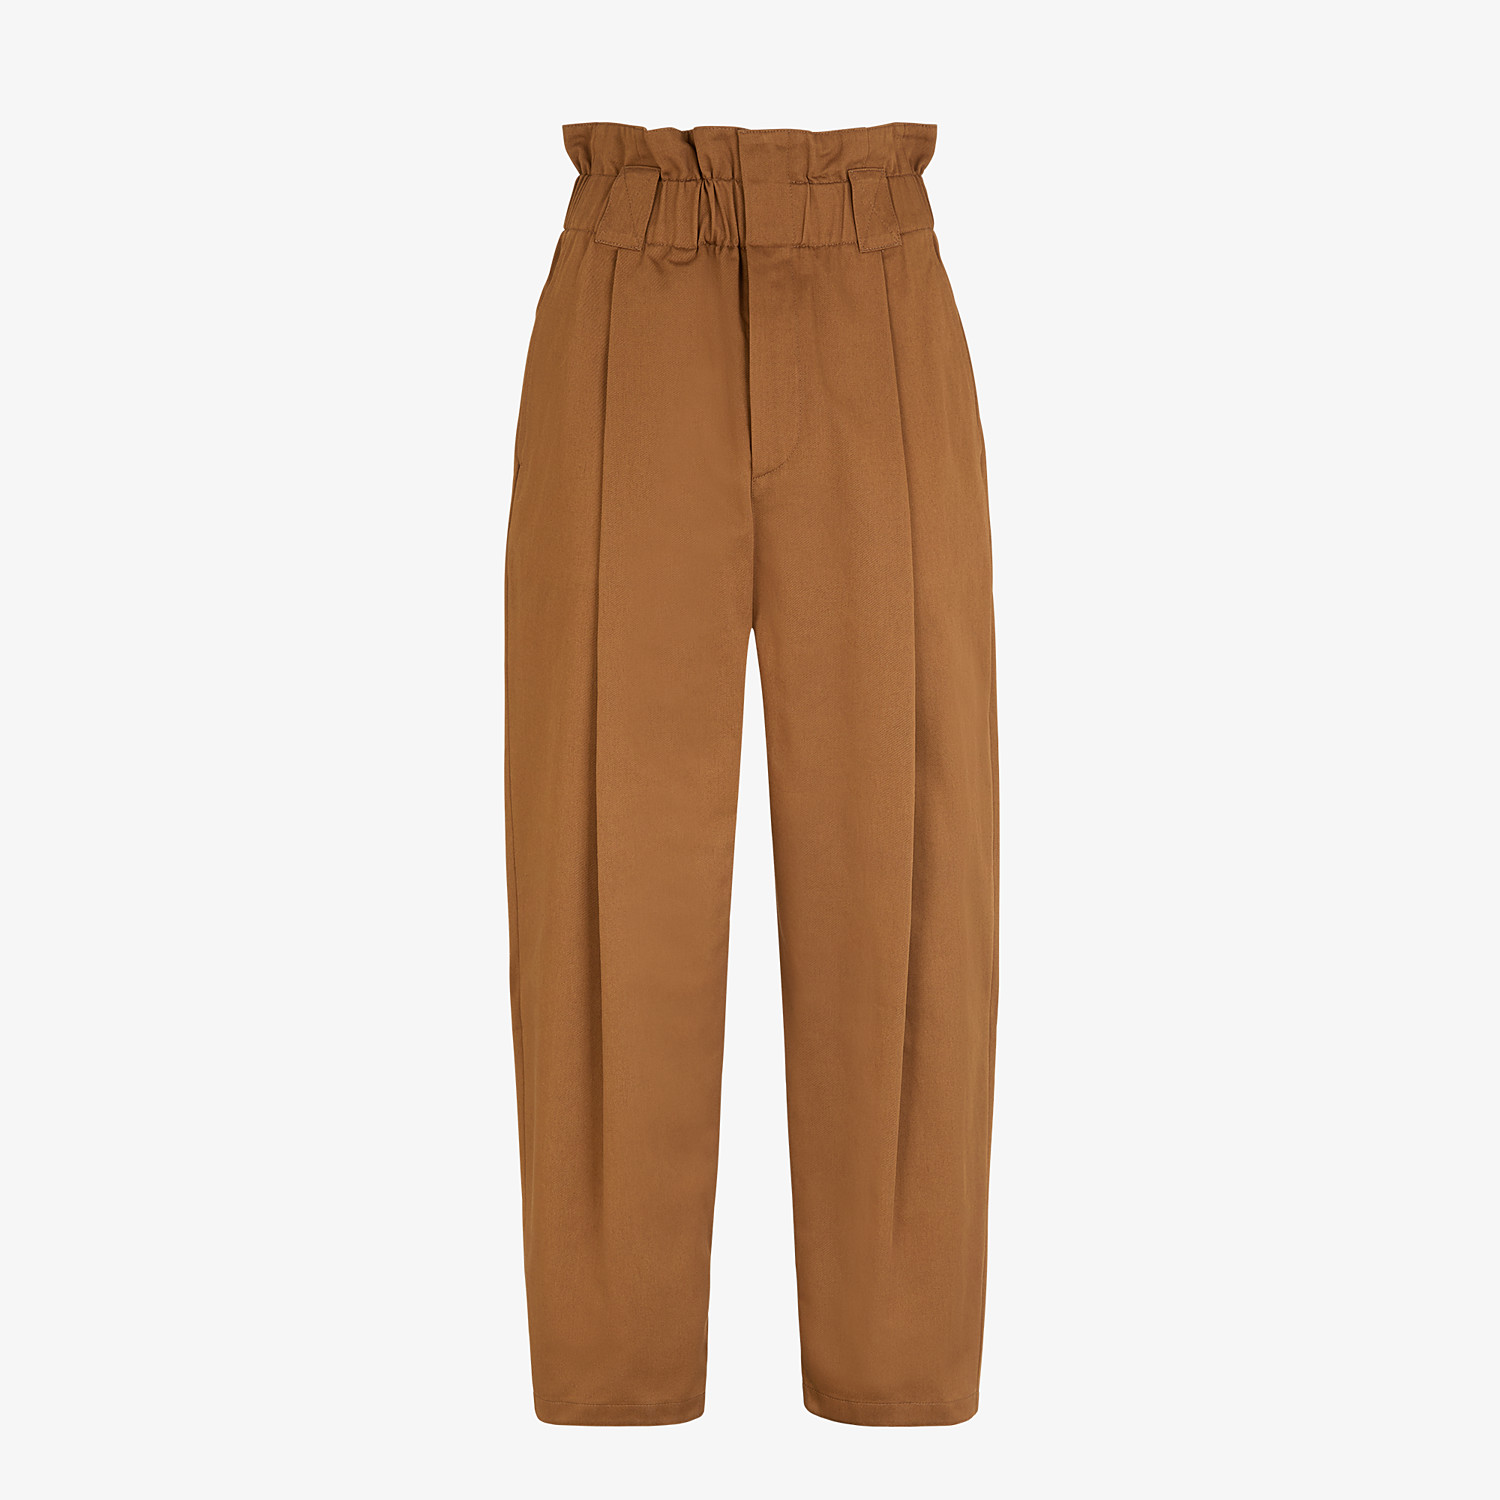 FENDI PANTS - Brown gabardine pants - view 1 detail